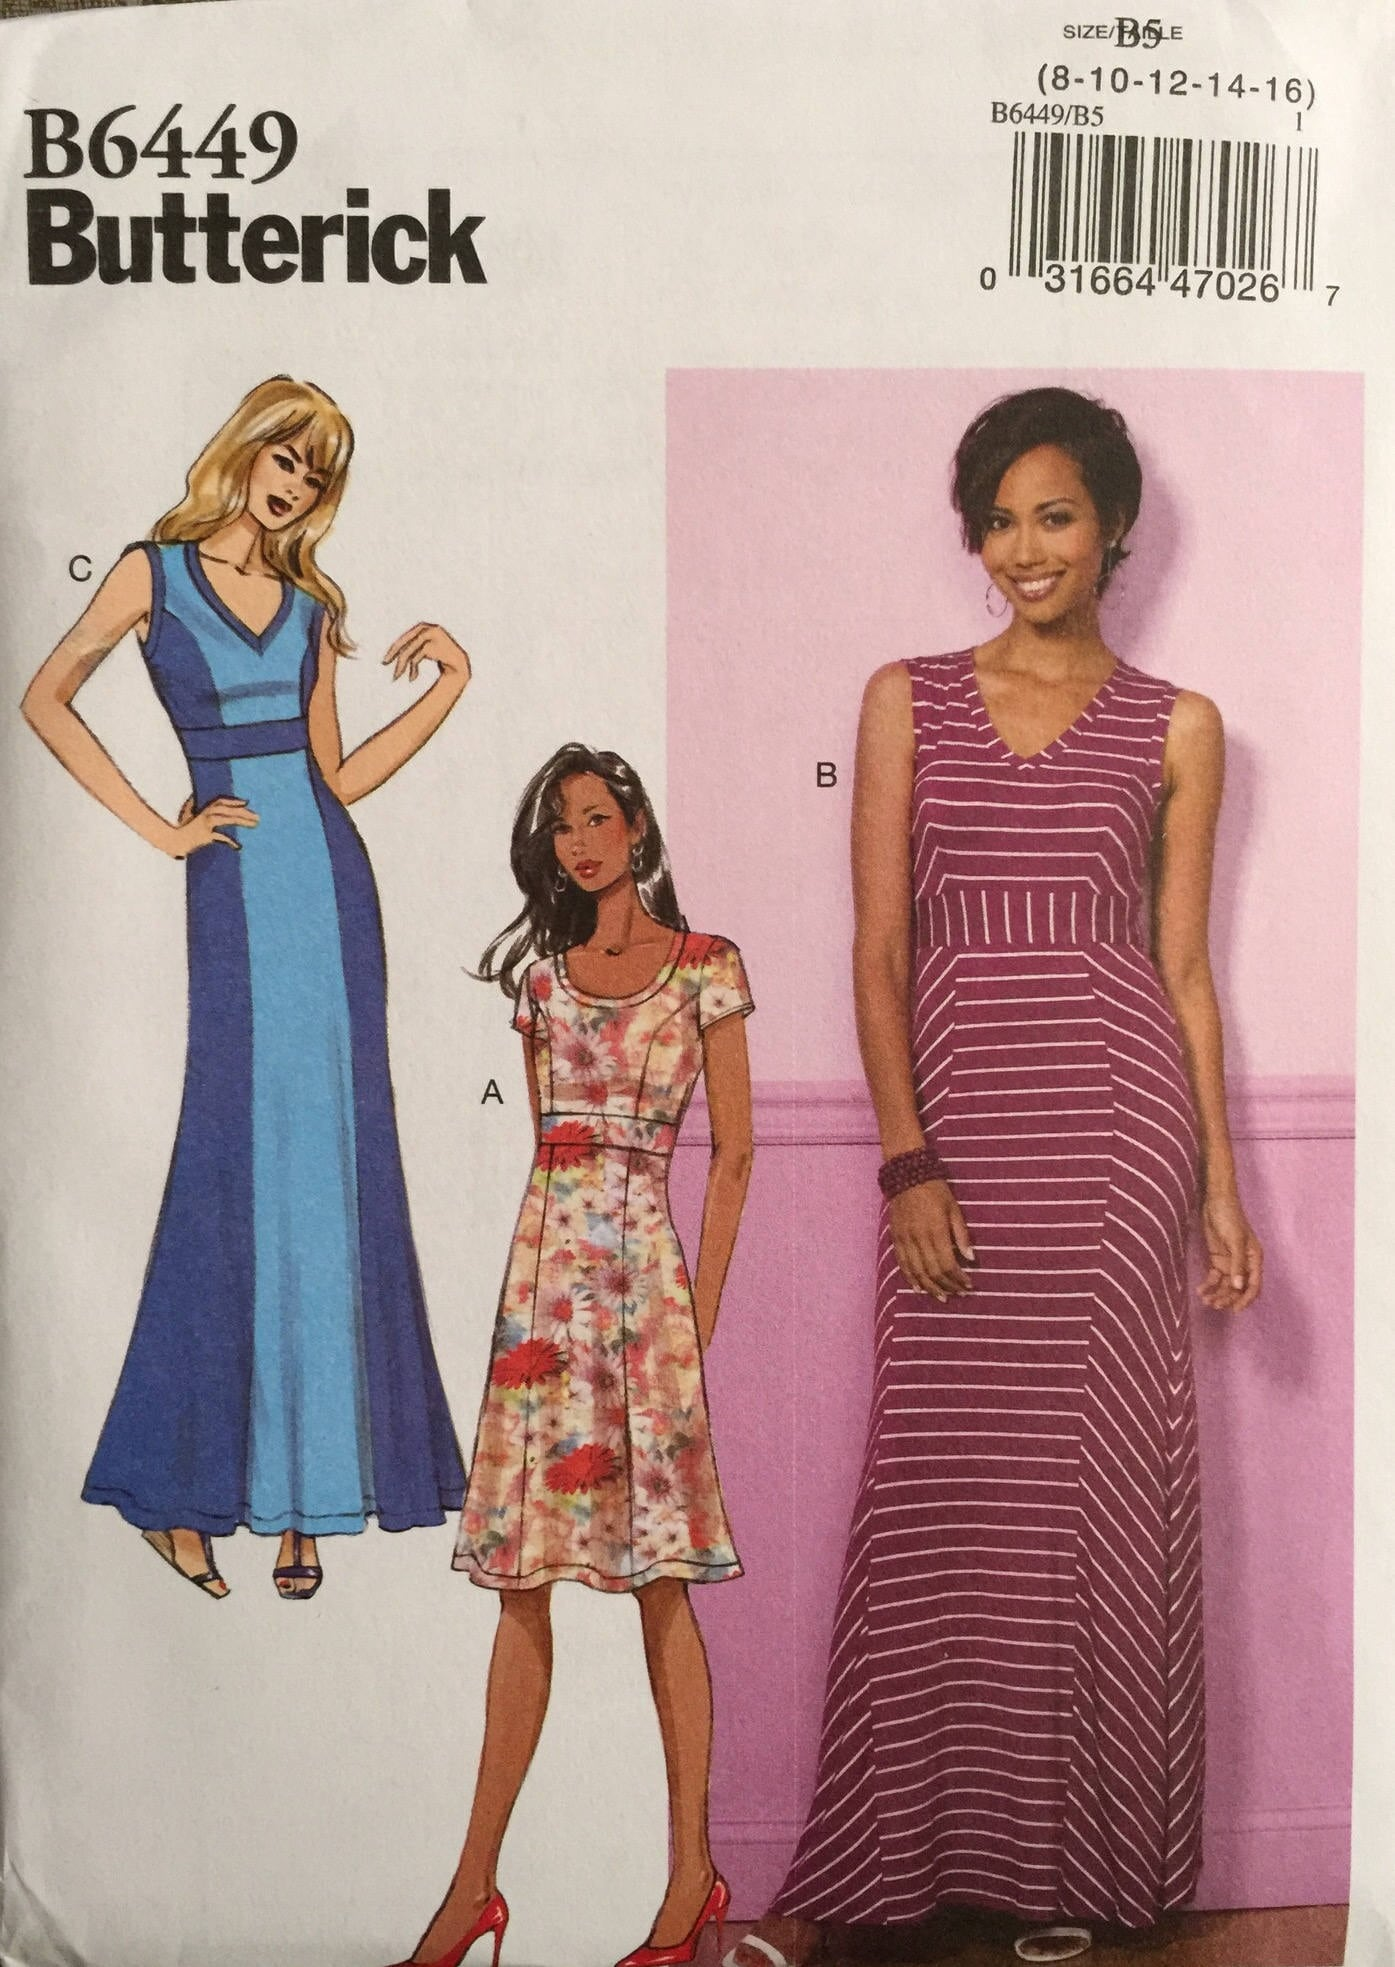 Butterick B6449, Size 8 10 12 14 16, Misses' Dress Pattern, UNCUT, Maxi Dress, Pullover Dress, Wedding Guest, Work Wear, Summer, 2017